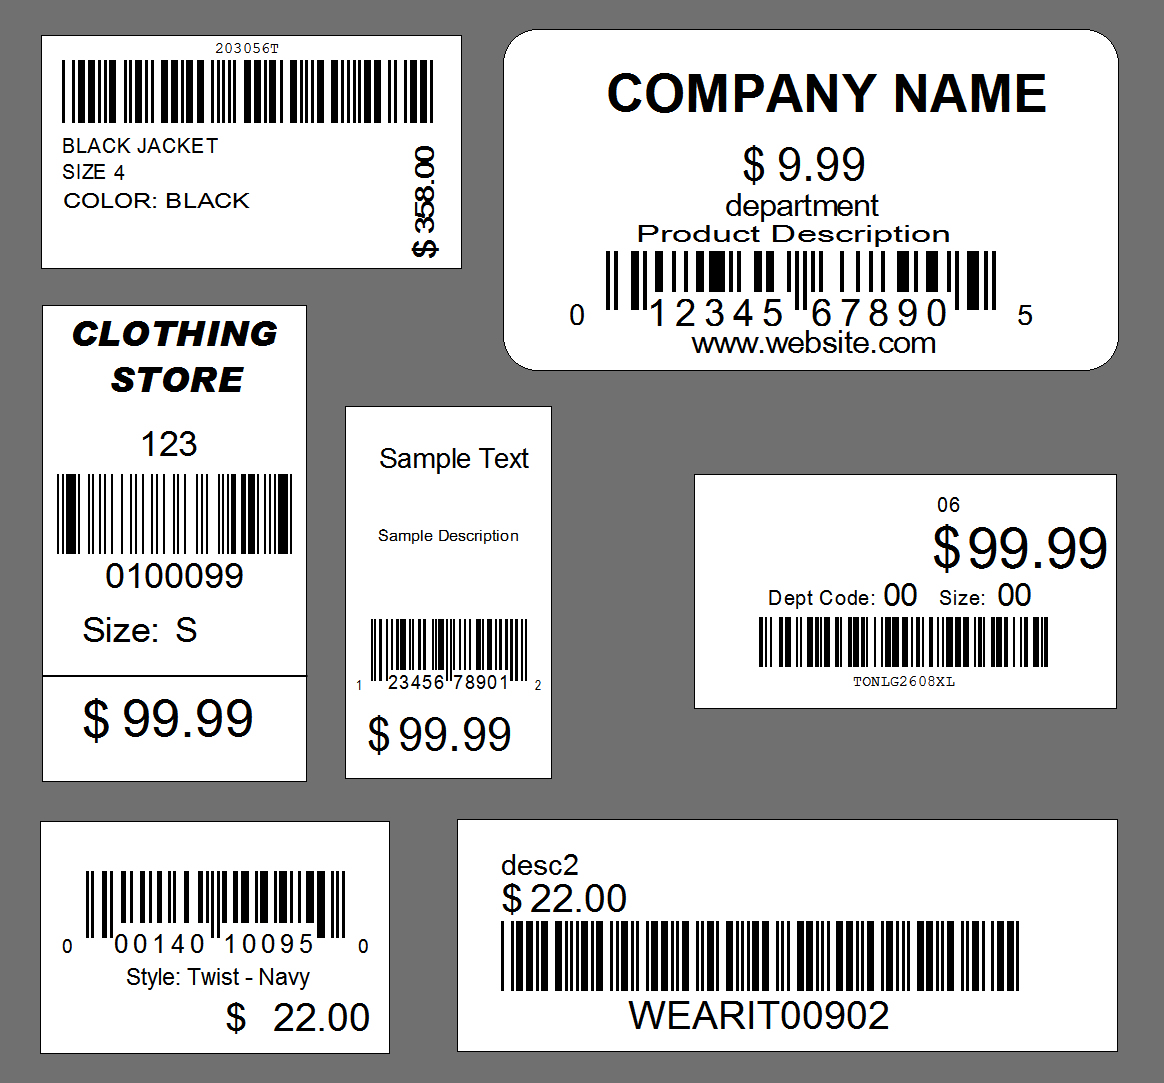 barcode label tag template design service retail. Black Bedroom Furniture Sets. Home Design Ideas